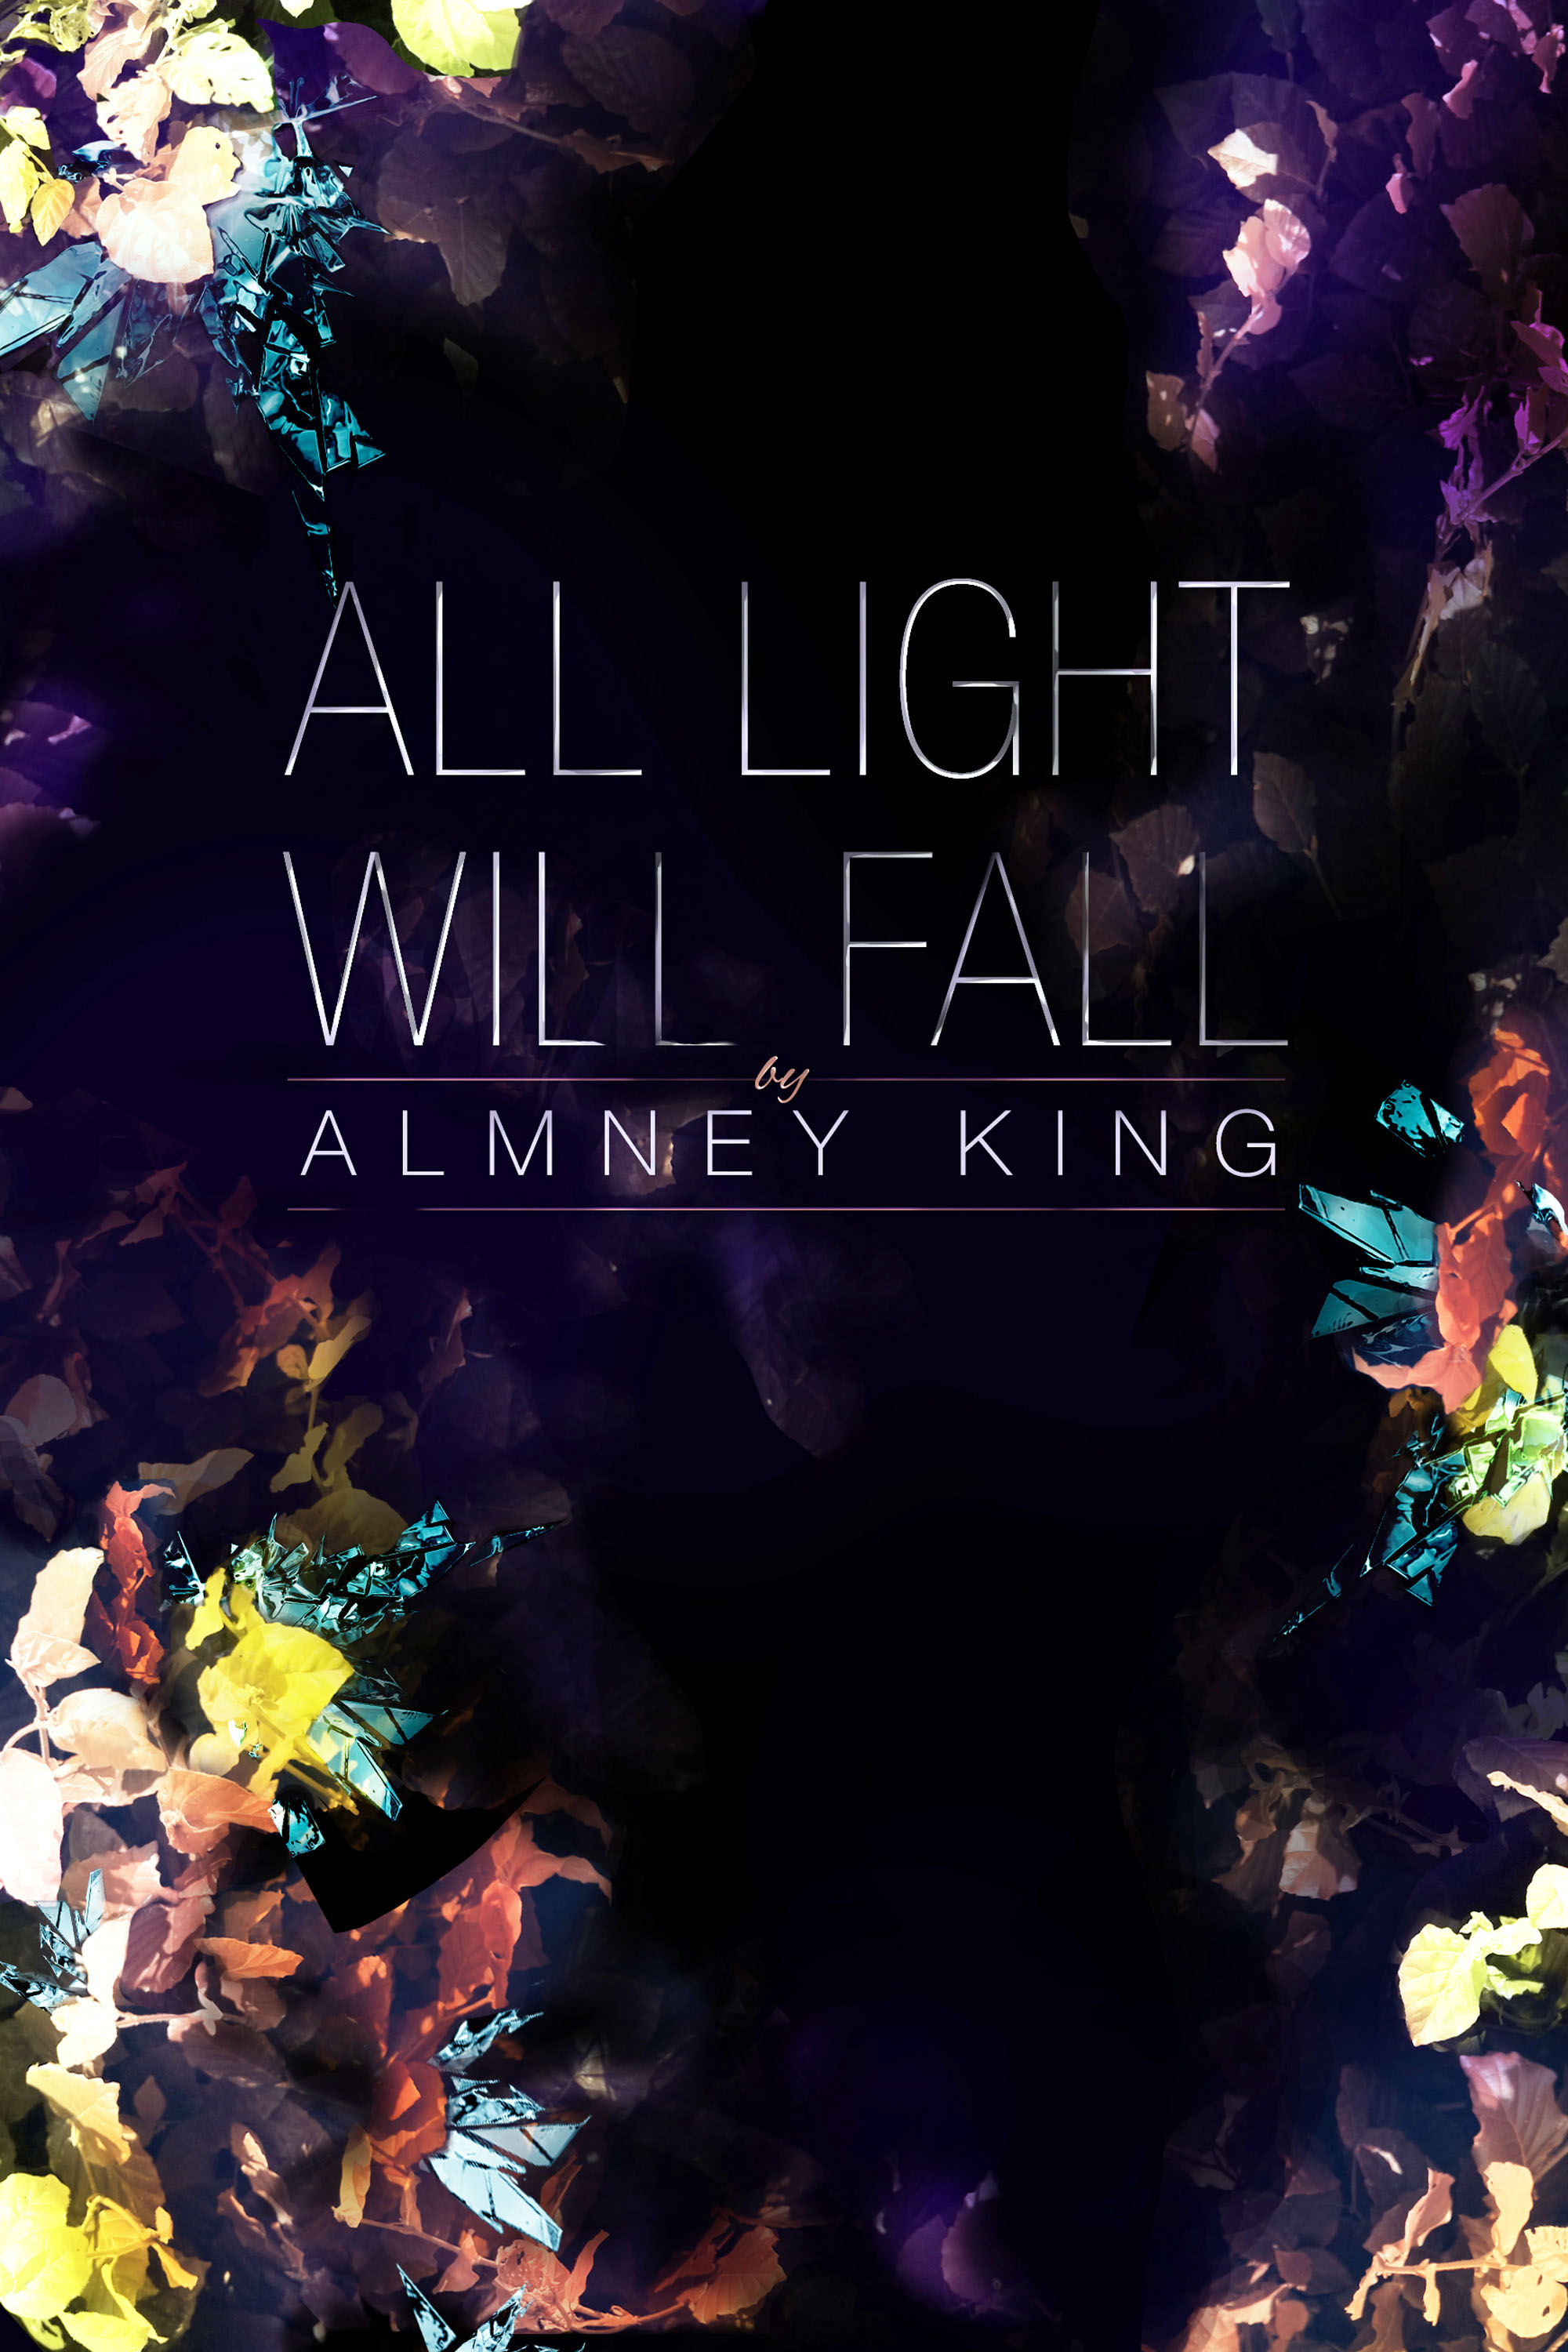 ALL LIGHT WILL FALL